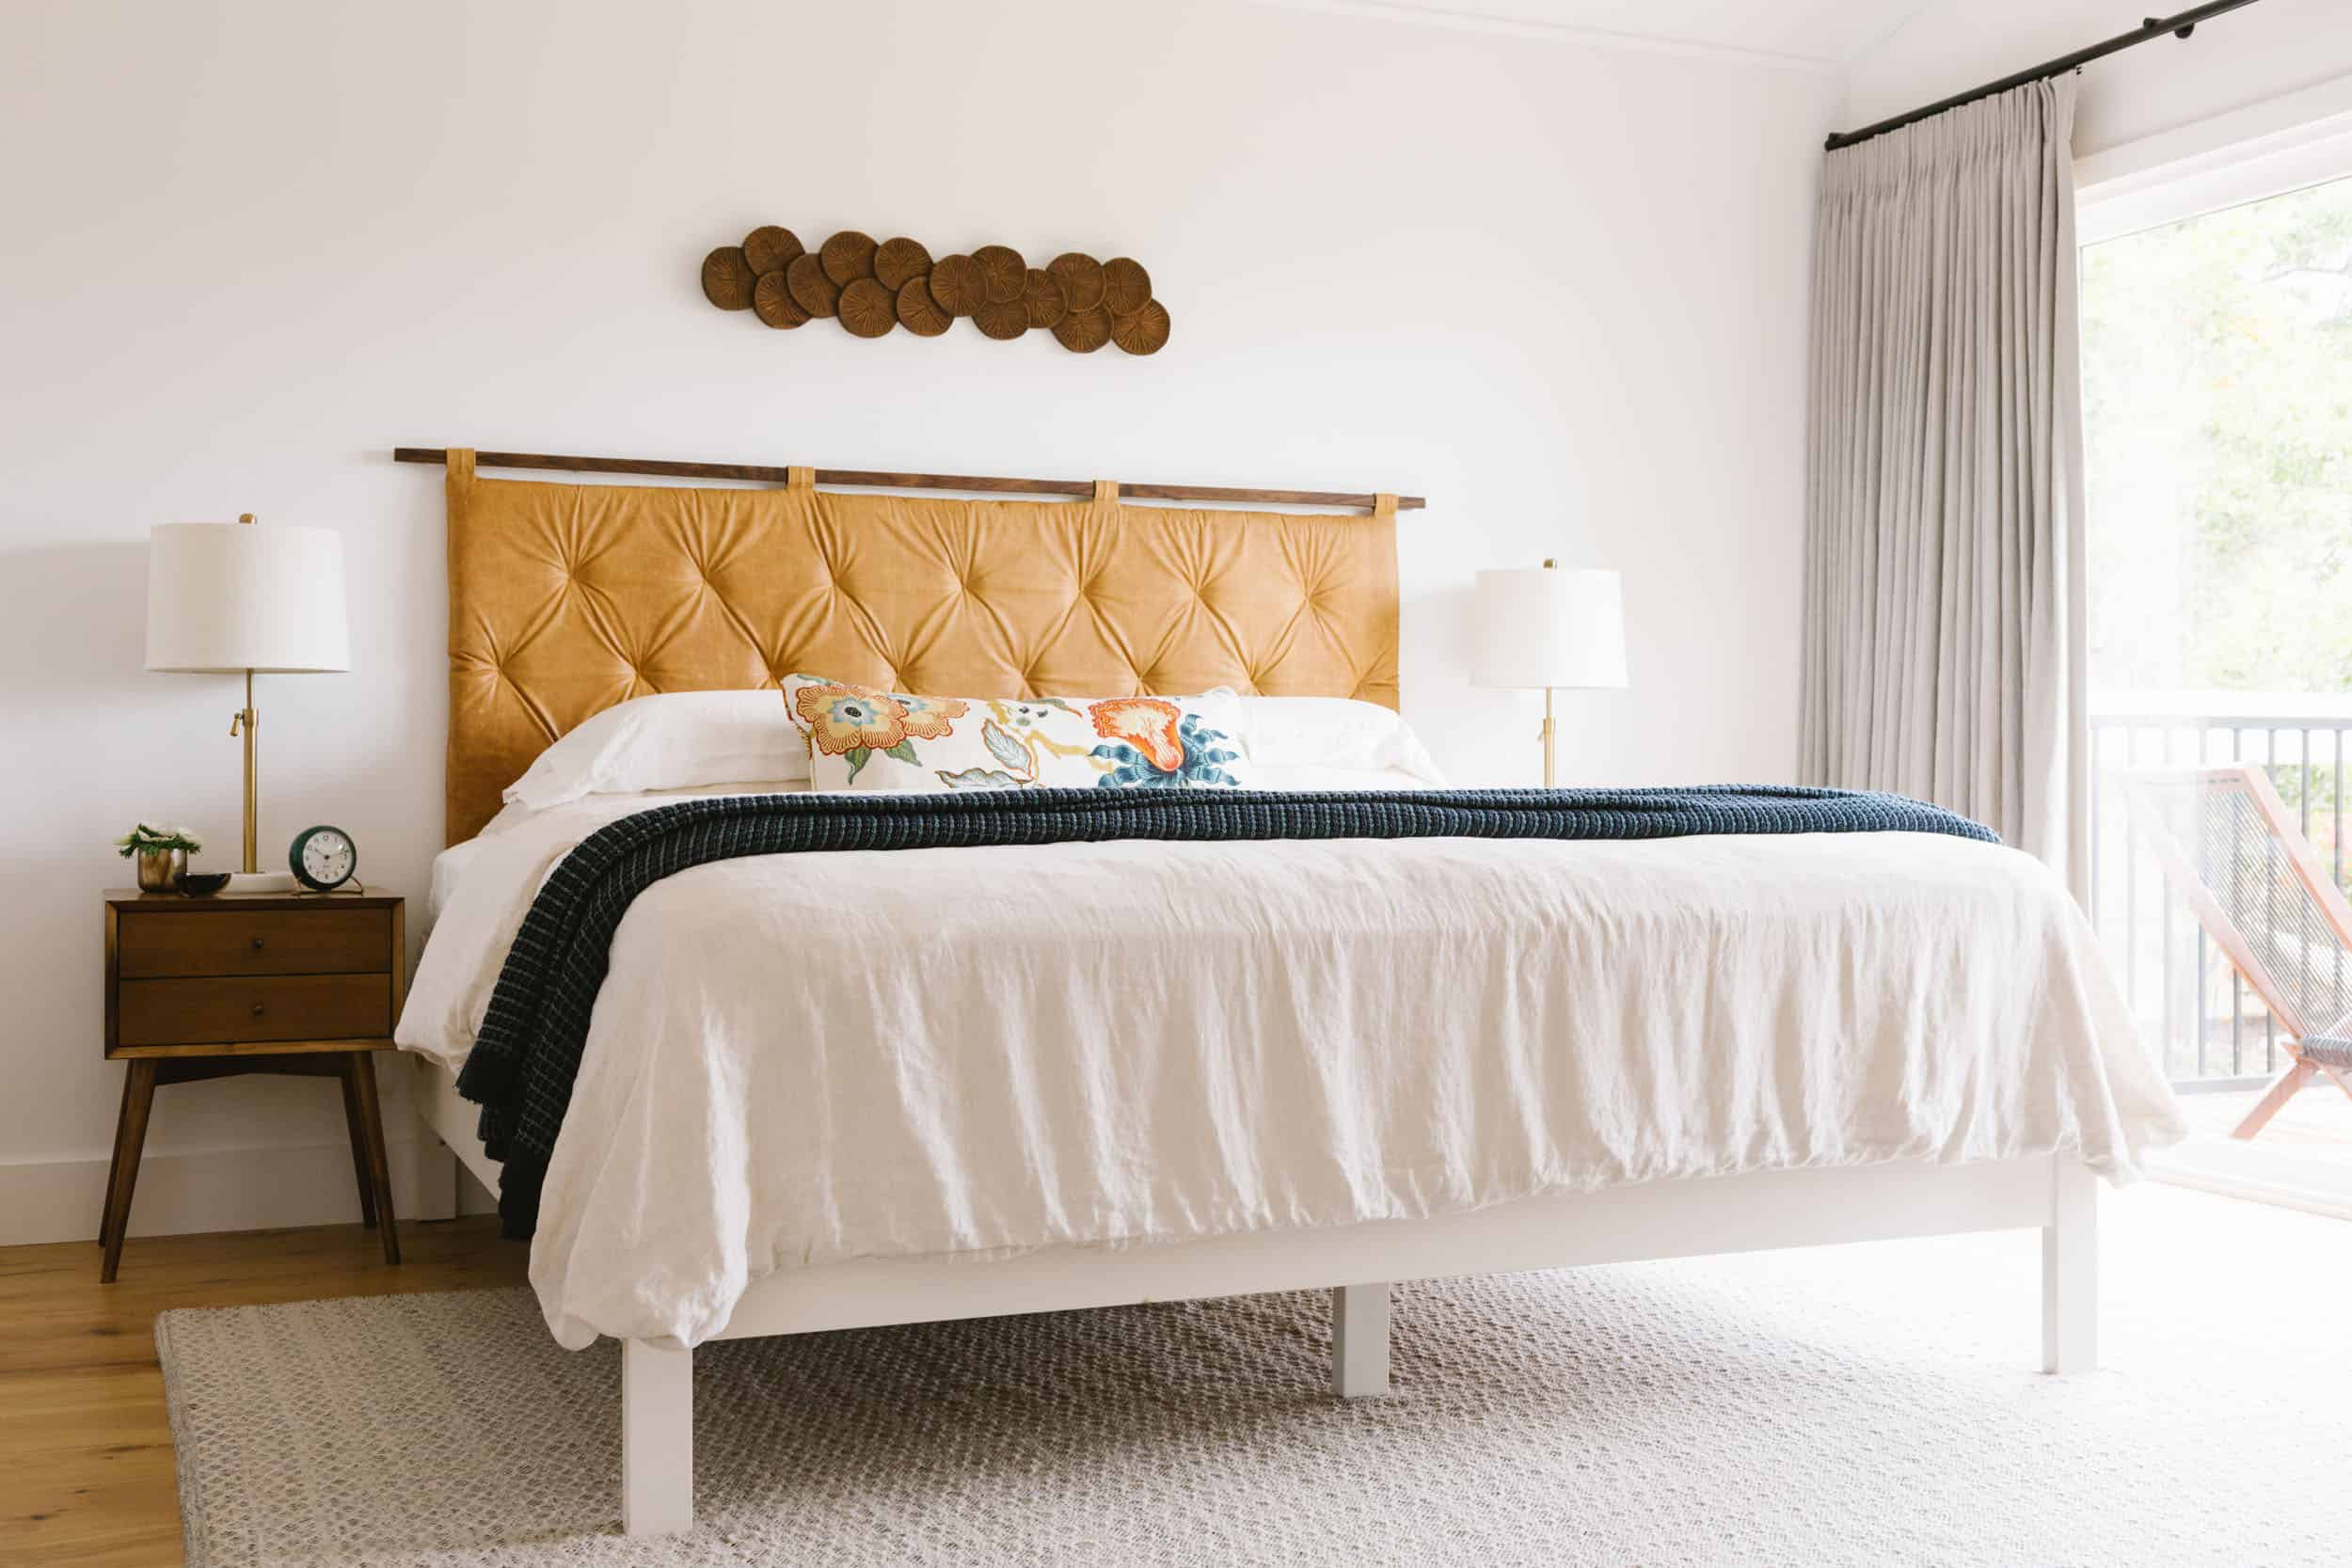 Samantha Gluck Emily Henderson Bedroom Leather Headboard